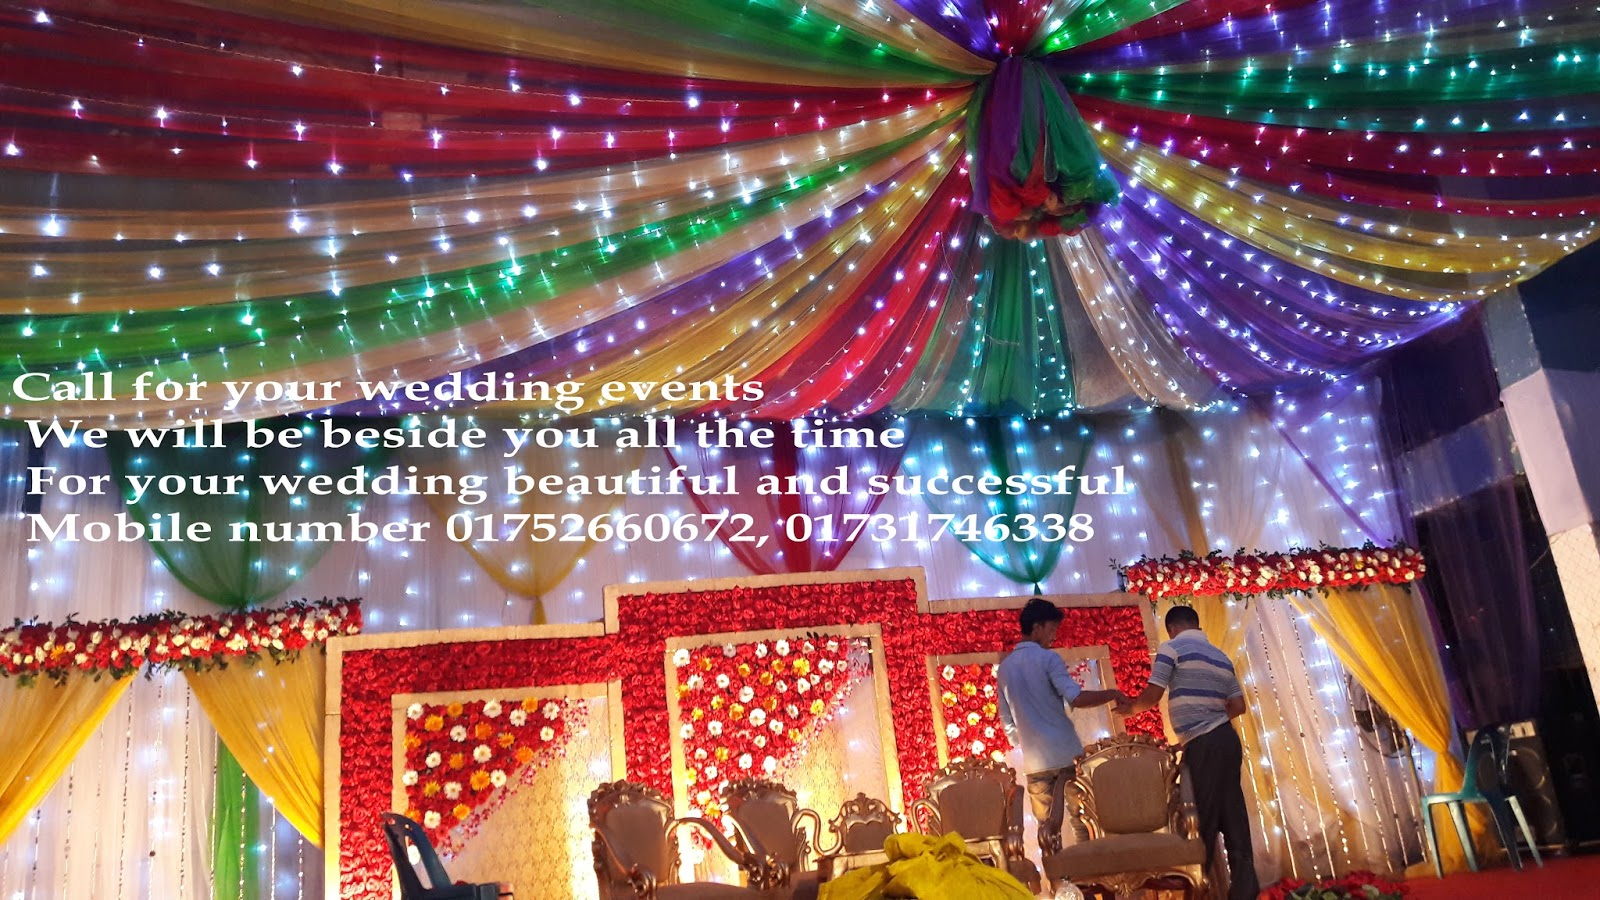 Ceiling pandal decor wedding management thecheapjerseys Choice Image